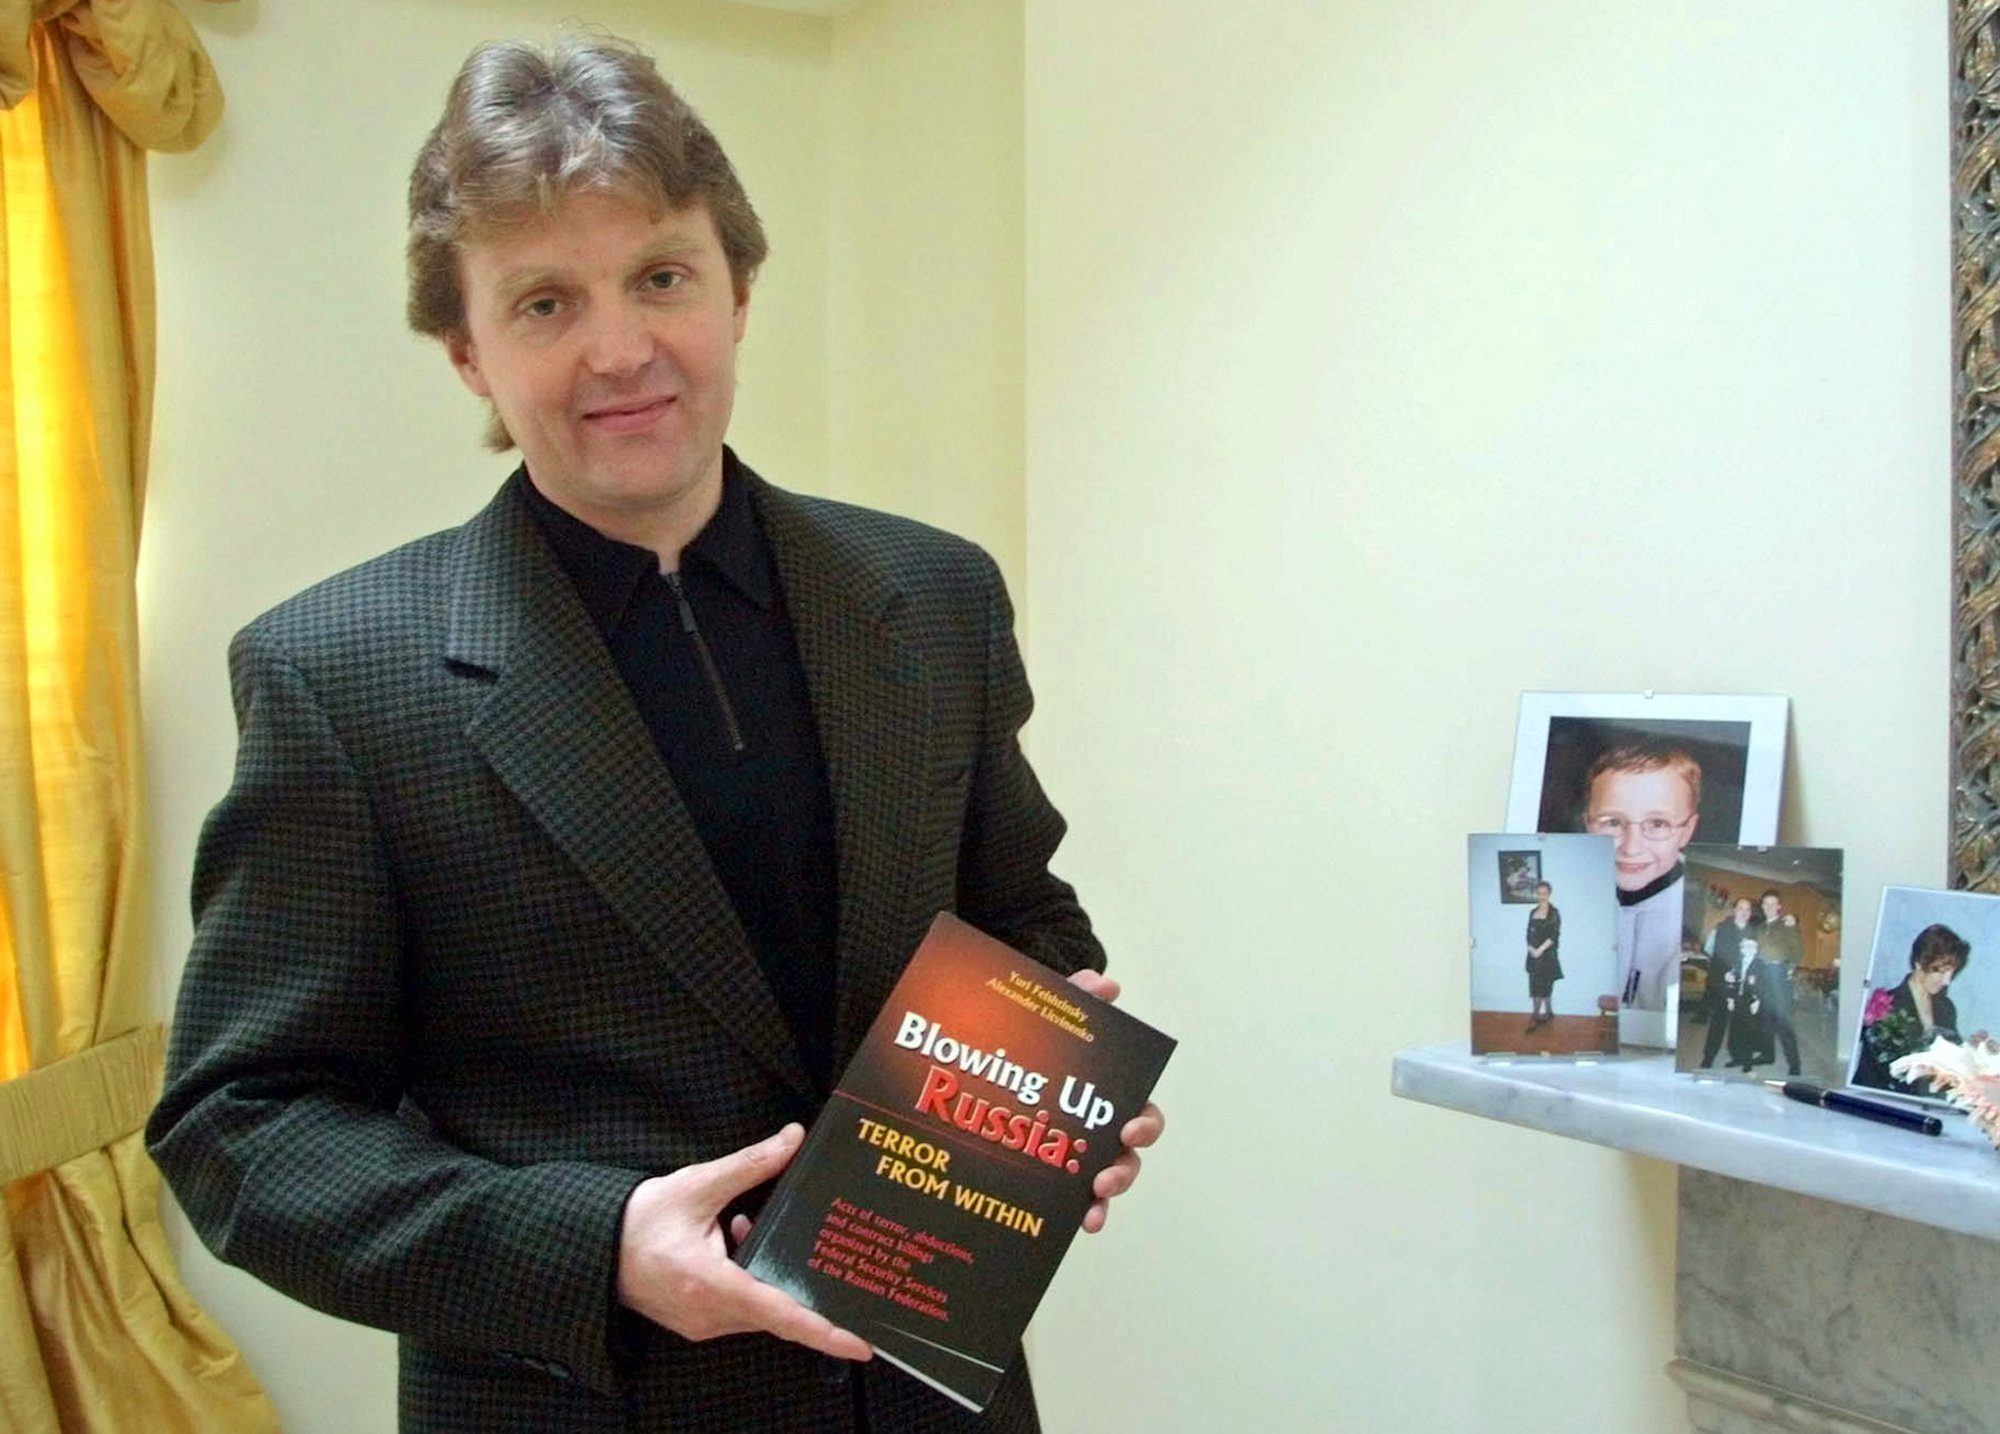 "Alexander Litvinenko A photo from files showing Alexander Litvinenko, former KGB spy and author of the book ""Blowing Up Russia: Terror From Within"" photographed at his home in London. Polonium first hit the headlines when it was used to kill KGB agent-turned-Kremlin critic Alexander Litvinenko in London in 2006. This week, Yasser Arafat's widow has called for the late Palestinian leader's body to be exhumed after scientists in Switzerland found elevated traces of radioactive polonium-210 on clothing he allegedly wore before his death in 2004 BC-EU--Polonium"